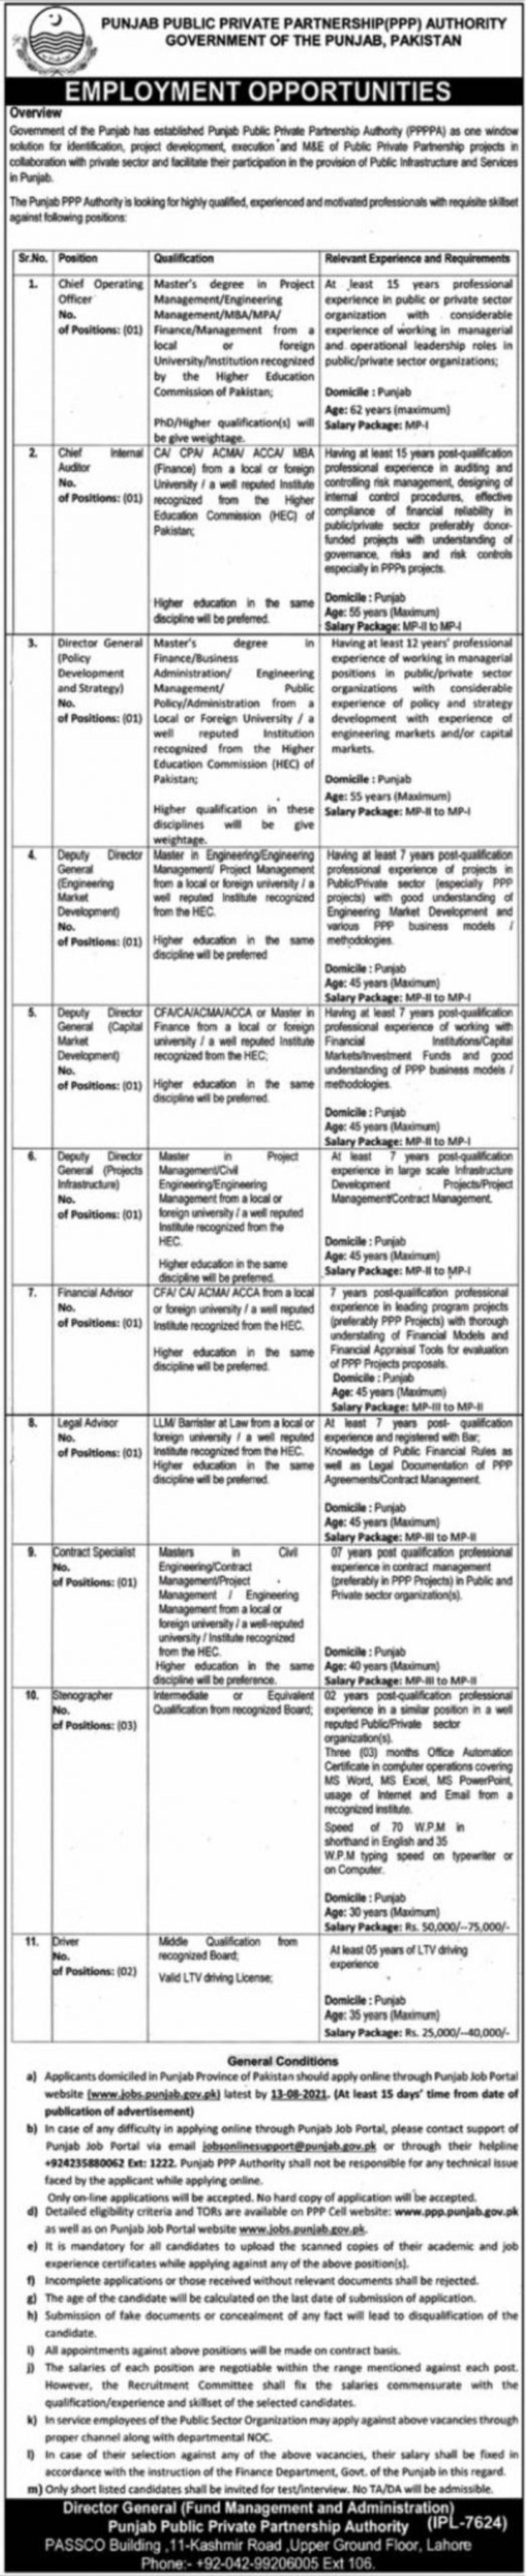 Punjab Public Private Partnership PPP Authority Government of the Punjab Vacancies 2021 1